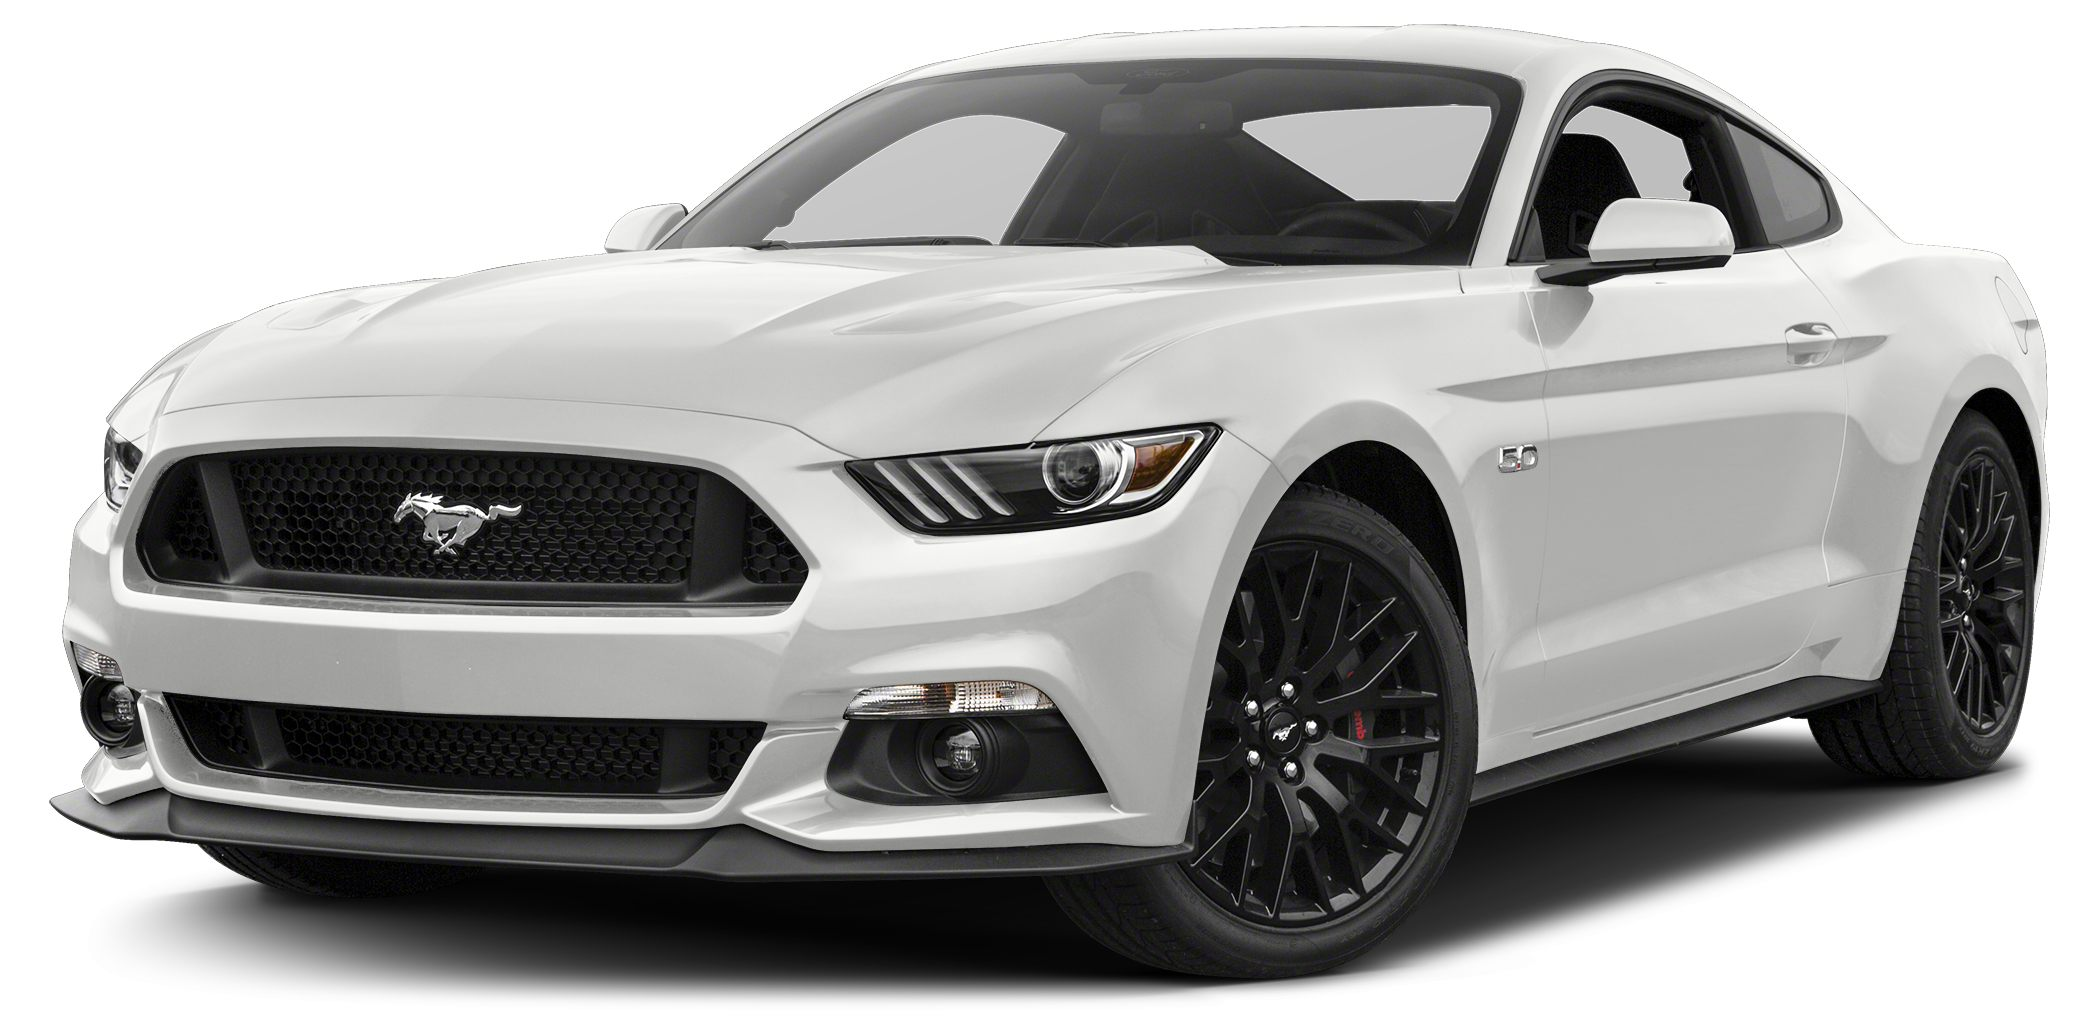 2015 Ford Mustang GT EDELBROCK SUPERCHARGED IMMACULATE CONDITION IN AND OUT BLISBREMBO BRAK